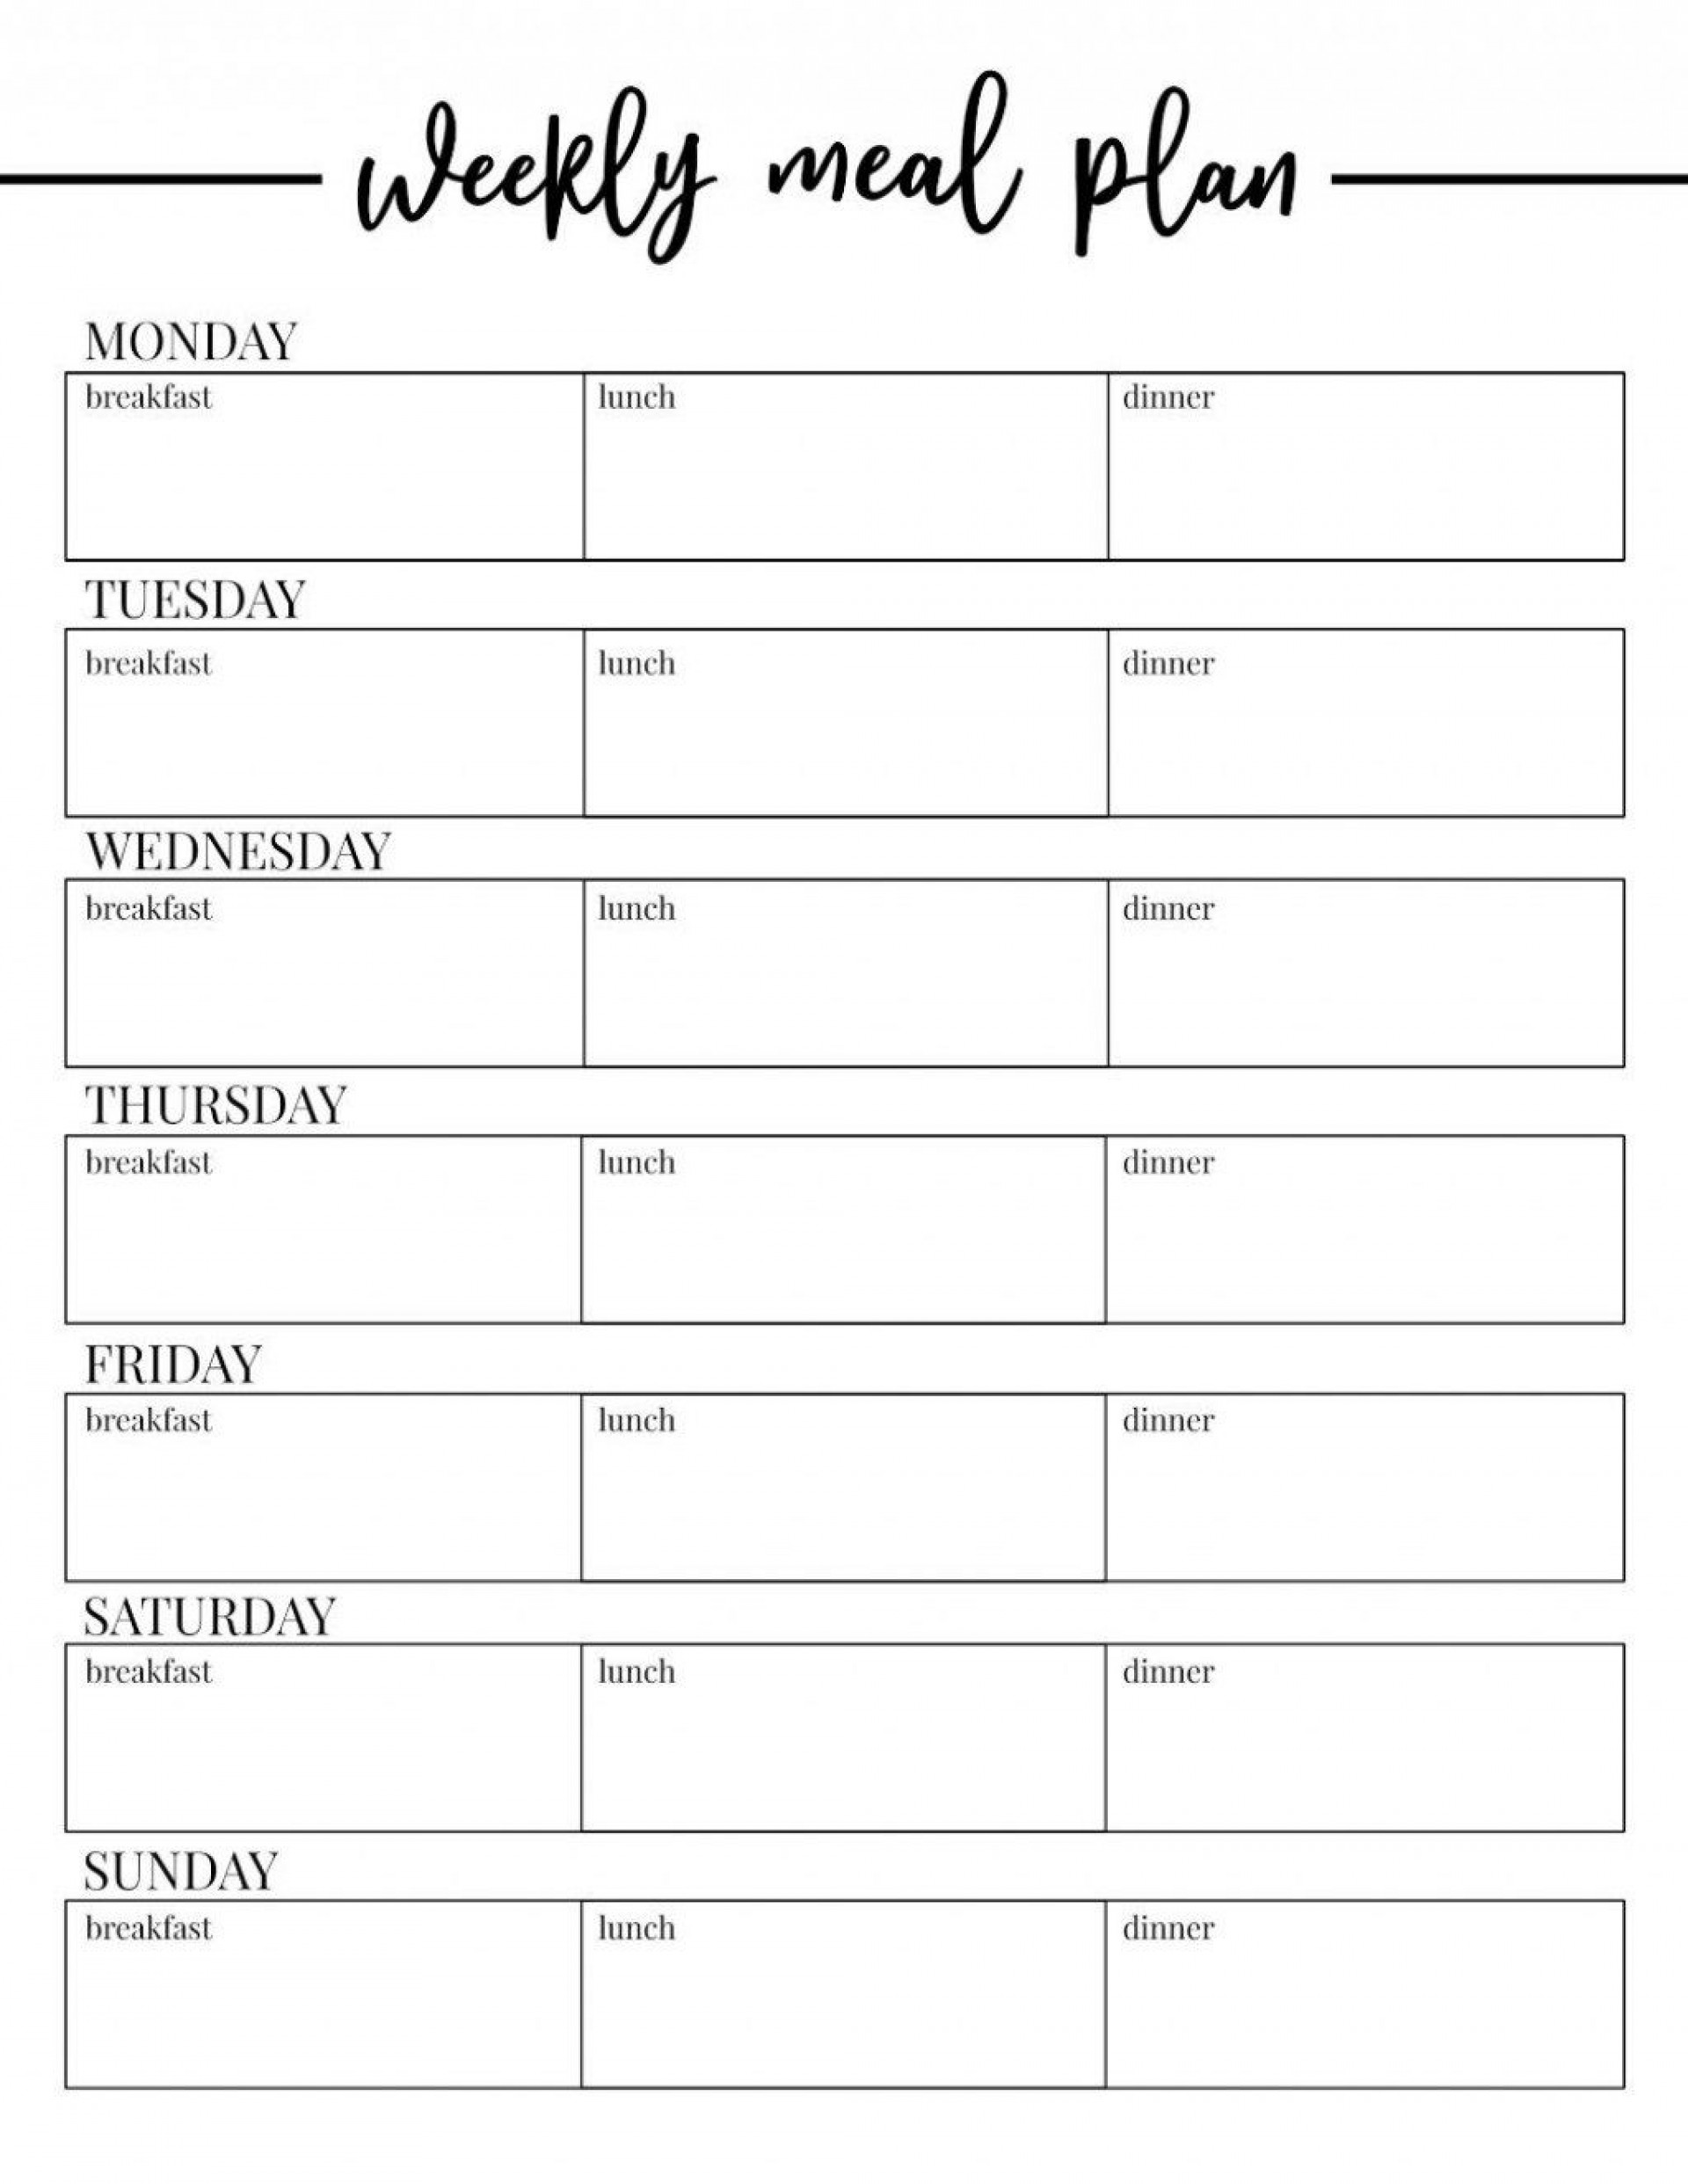 005 Unusual Excel Weekly Meal Planner Template Image  With Grocery List Downloadable1920